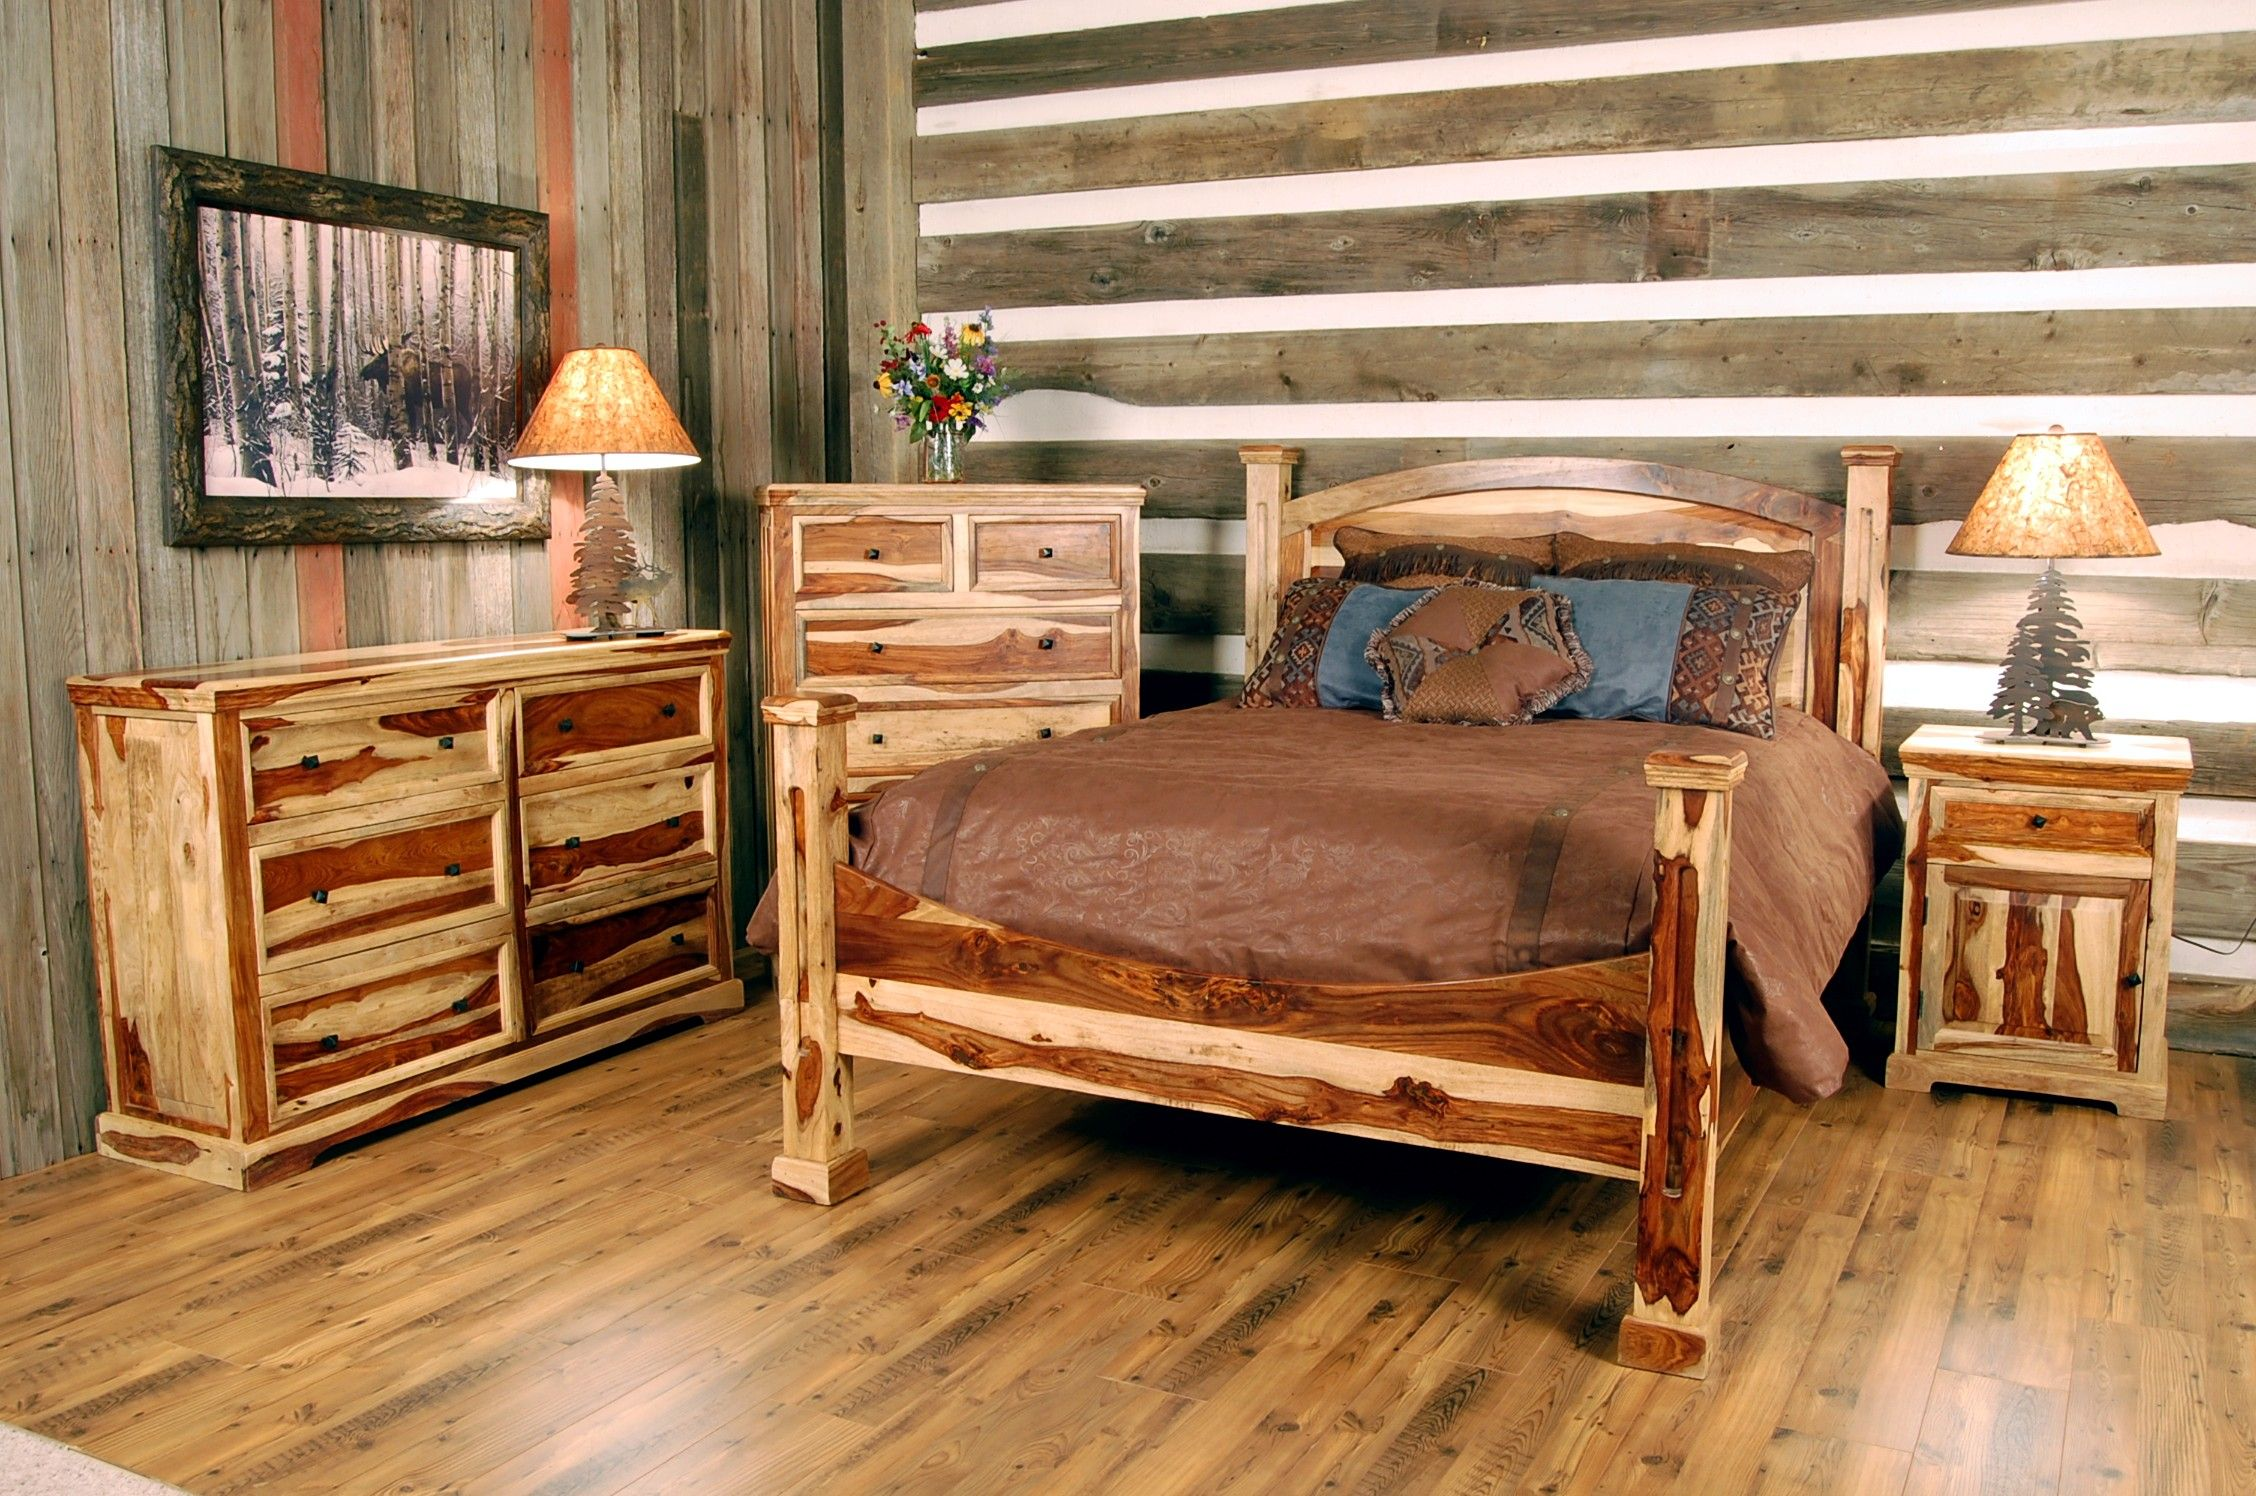 17 best images about rustic bedrooms on pinterest | shops, antigua